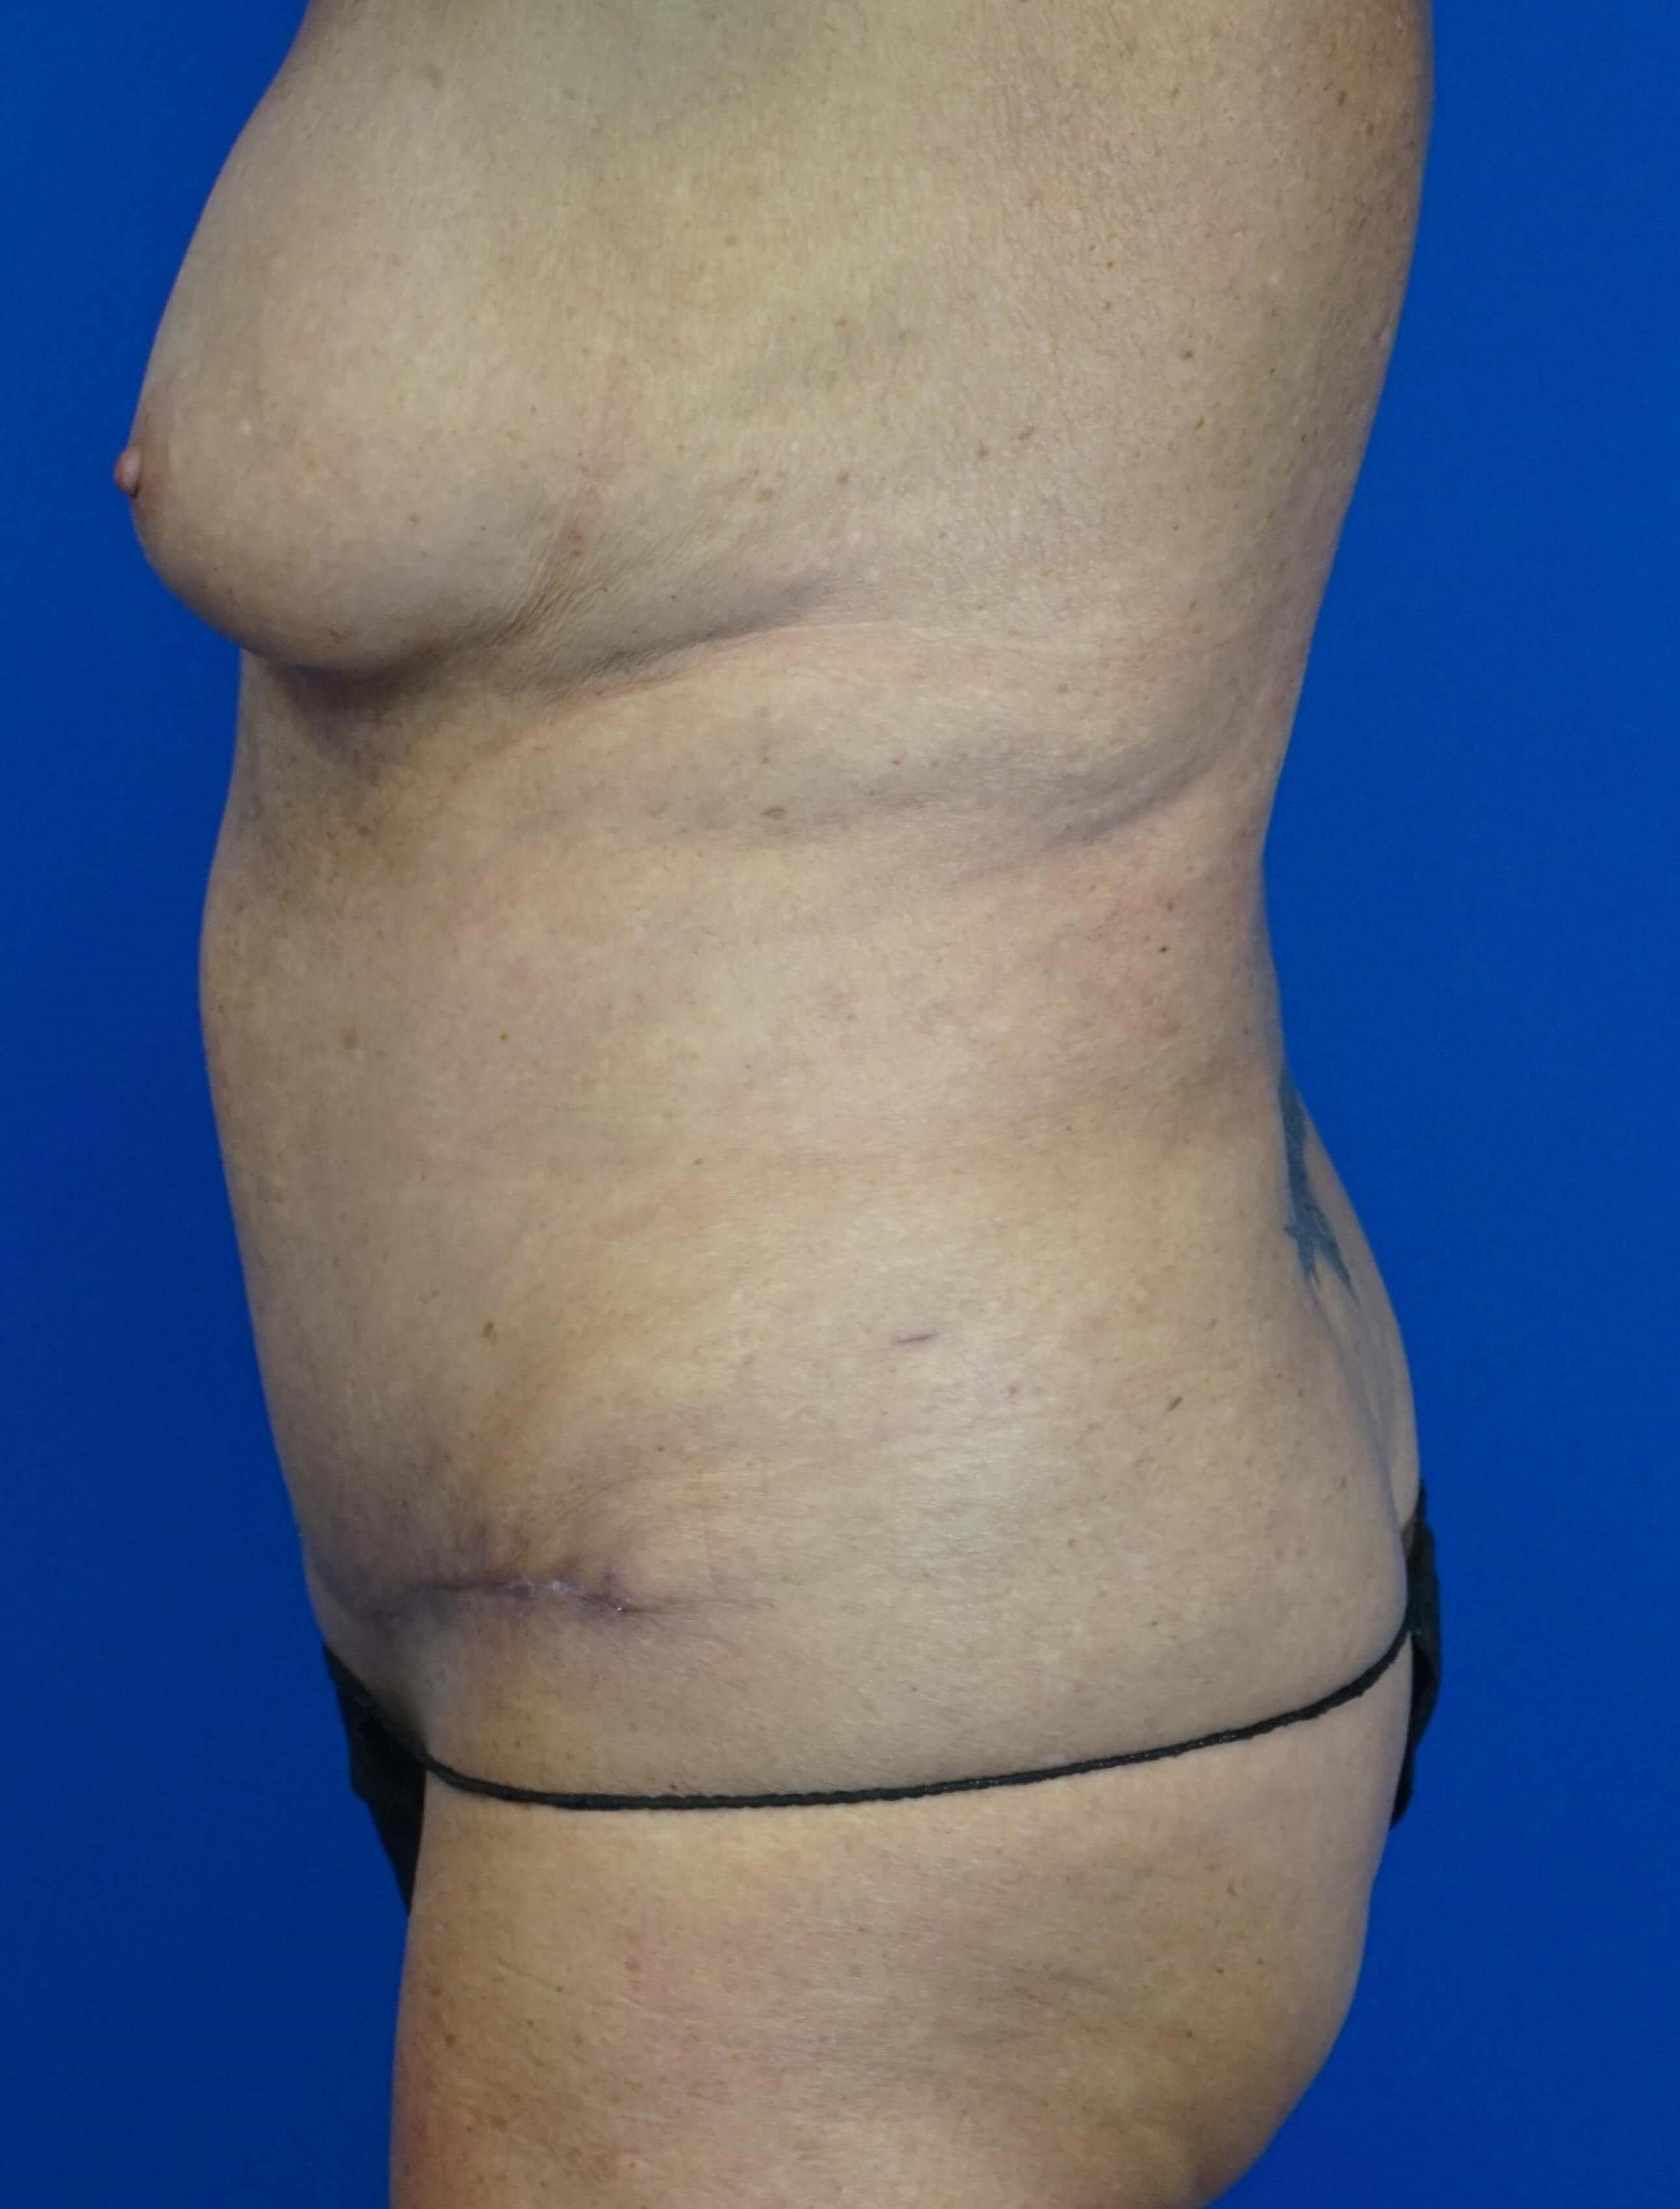 Tummy Tuck in a 64 year-old 6 weeks postop